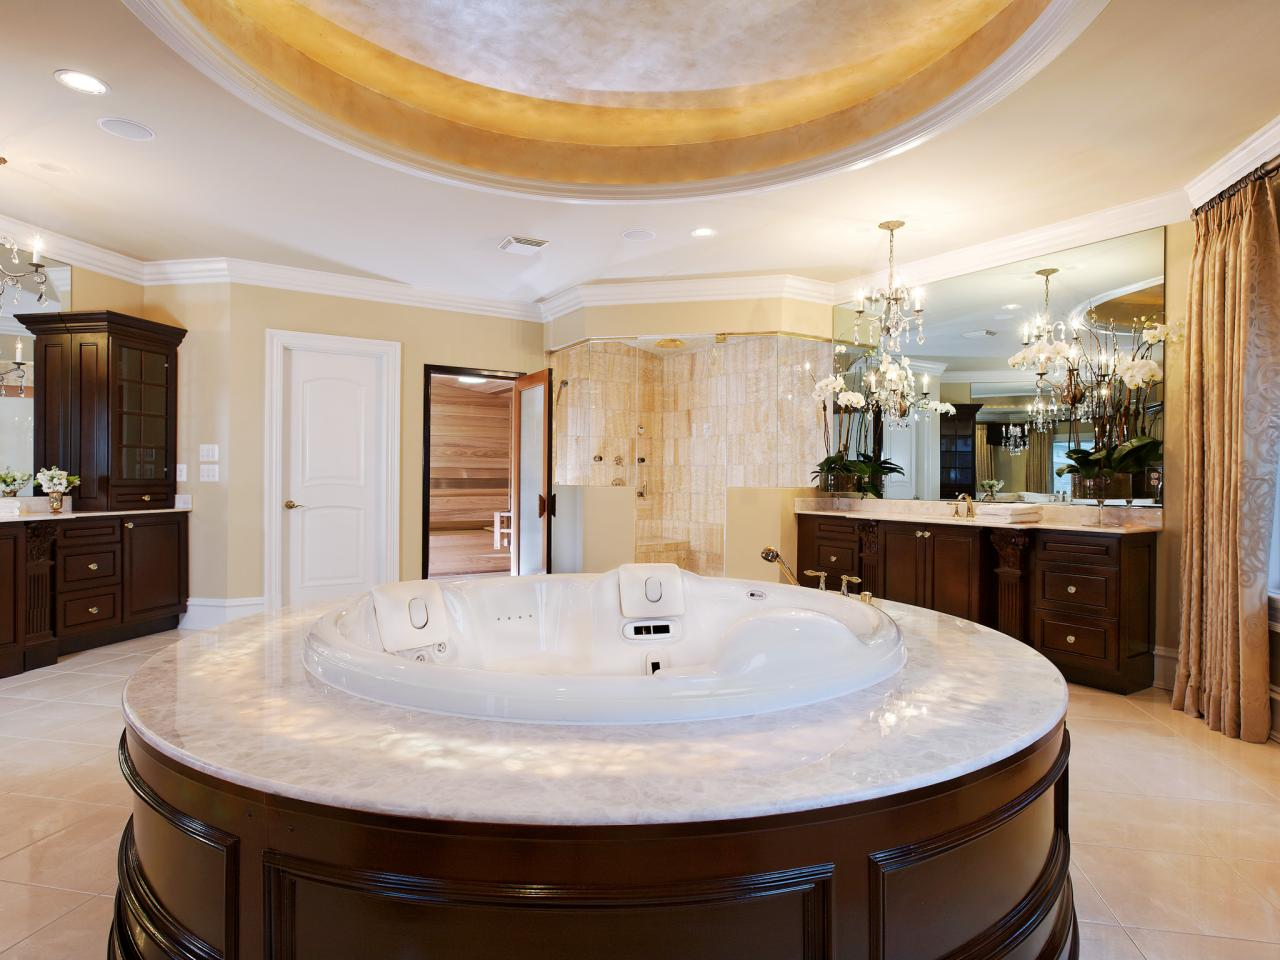 Whirlpool tub designs and options hgtv pictures tips hgtv for Master bathroom jacuzzi